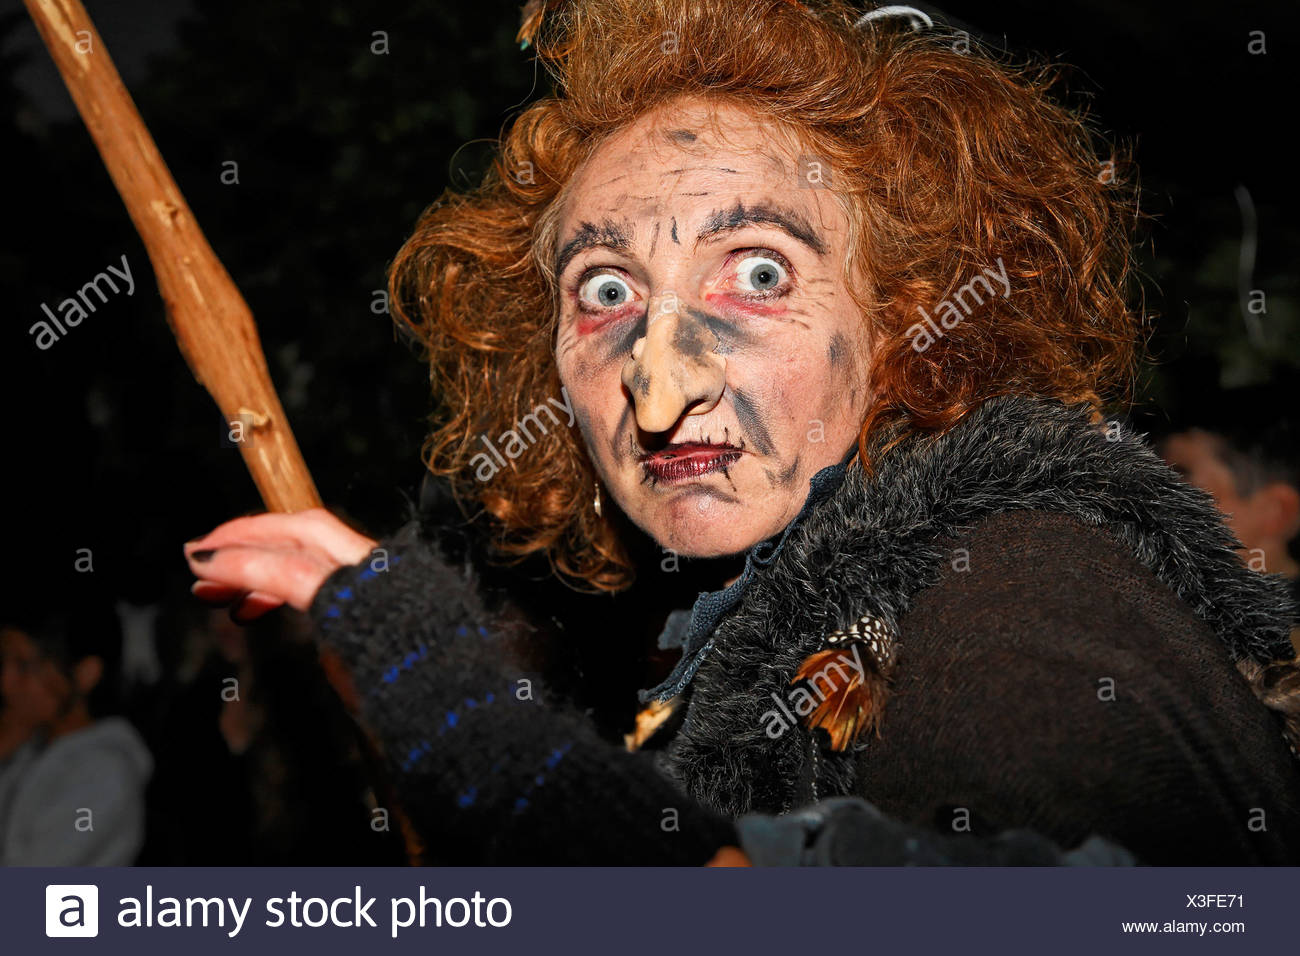 Witch in Bavarian Forest, Lower Bavaria, Germany - Stock Image